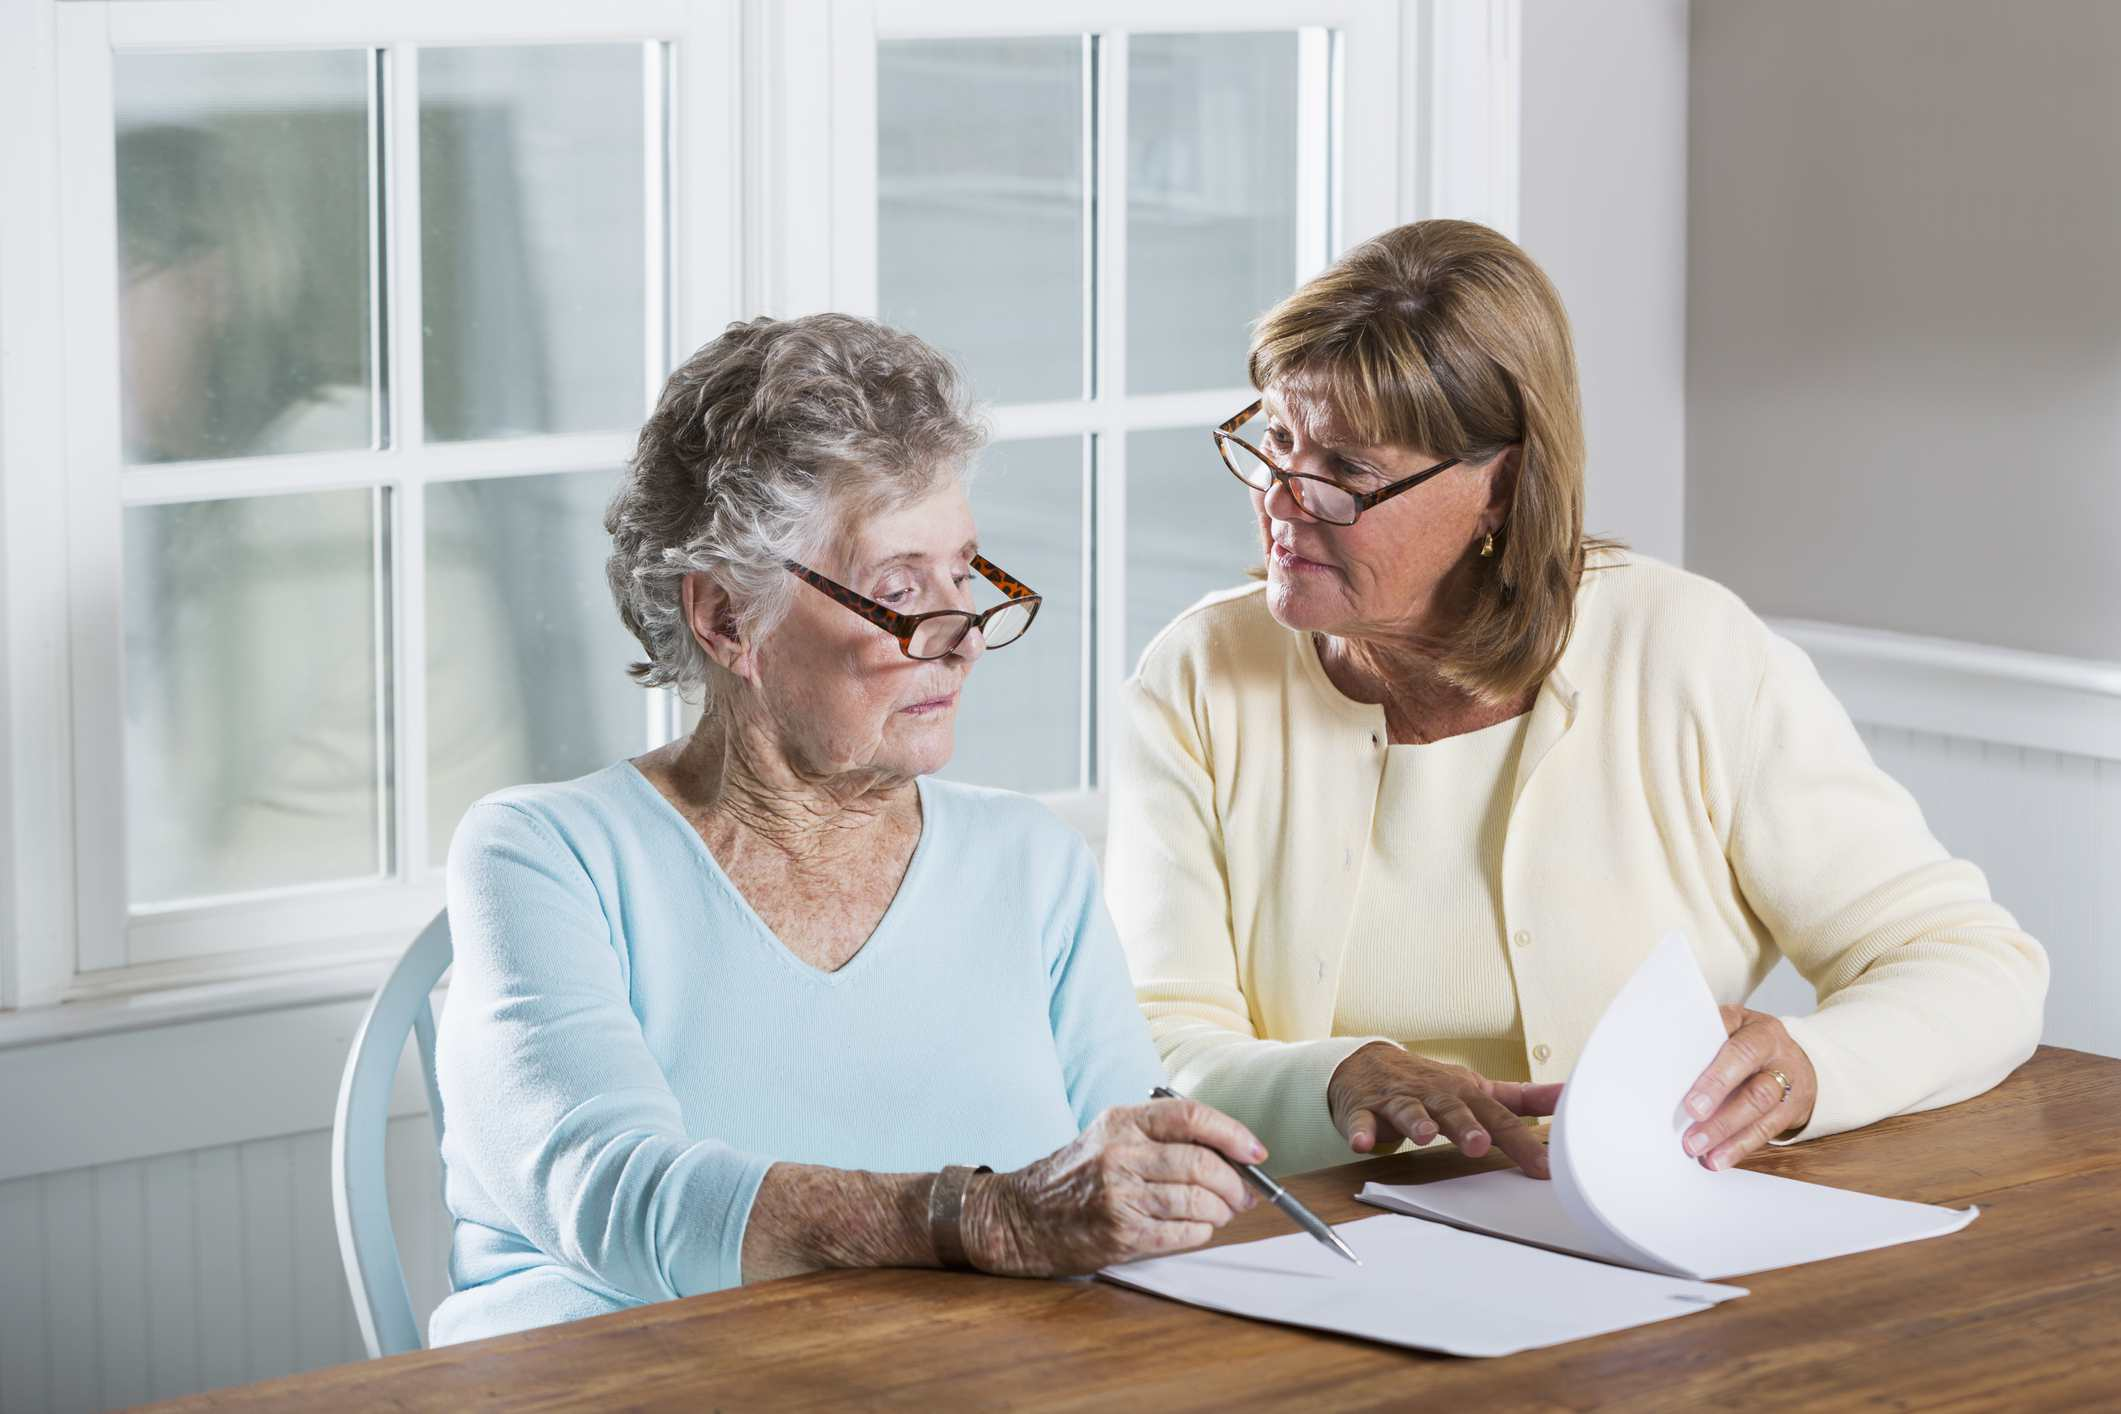 A woman helping her elderly mother with paperwork.